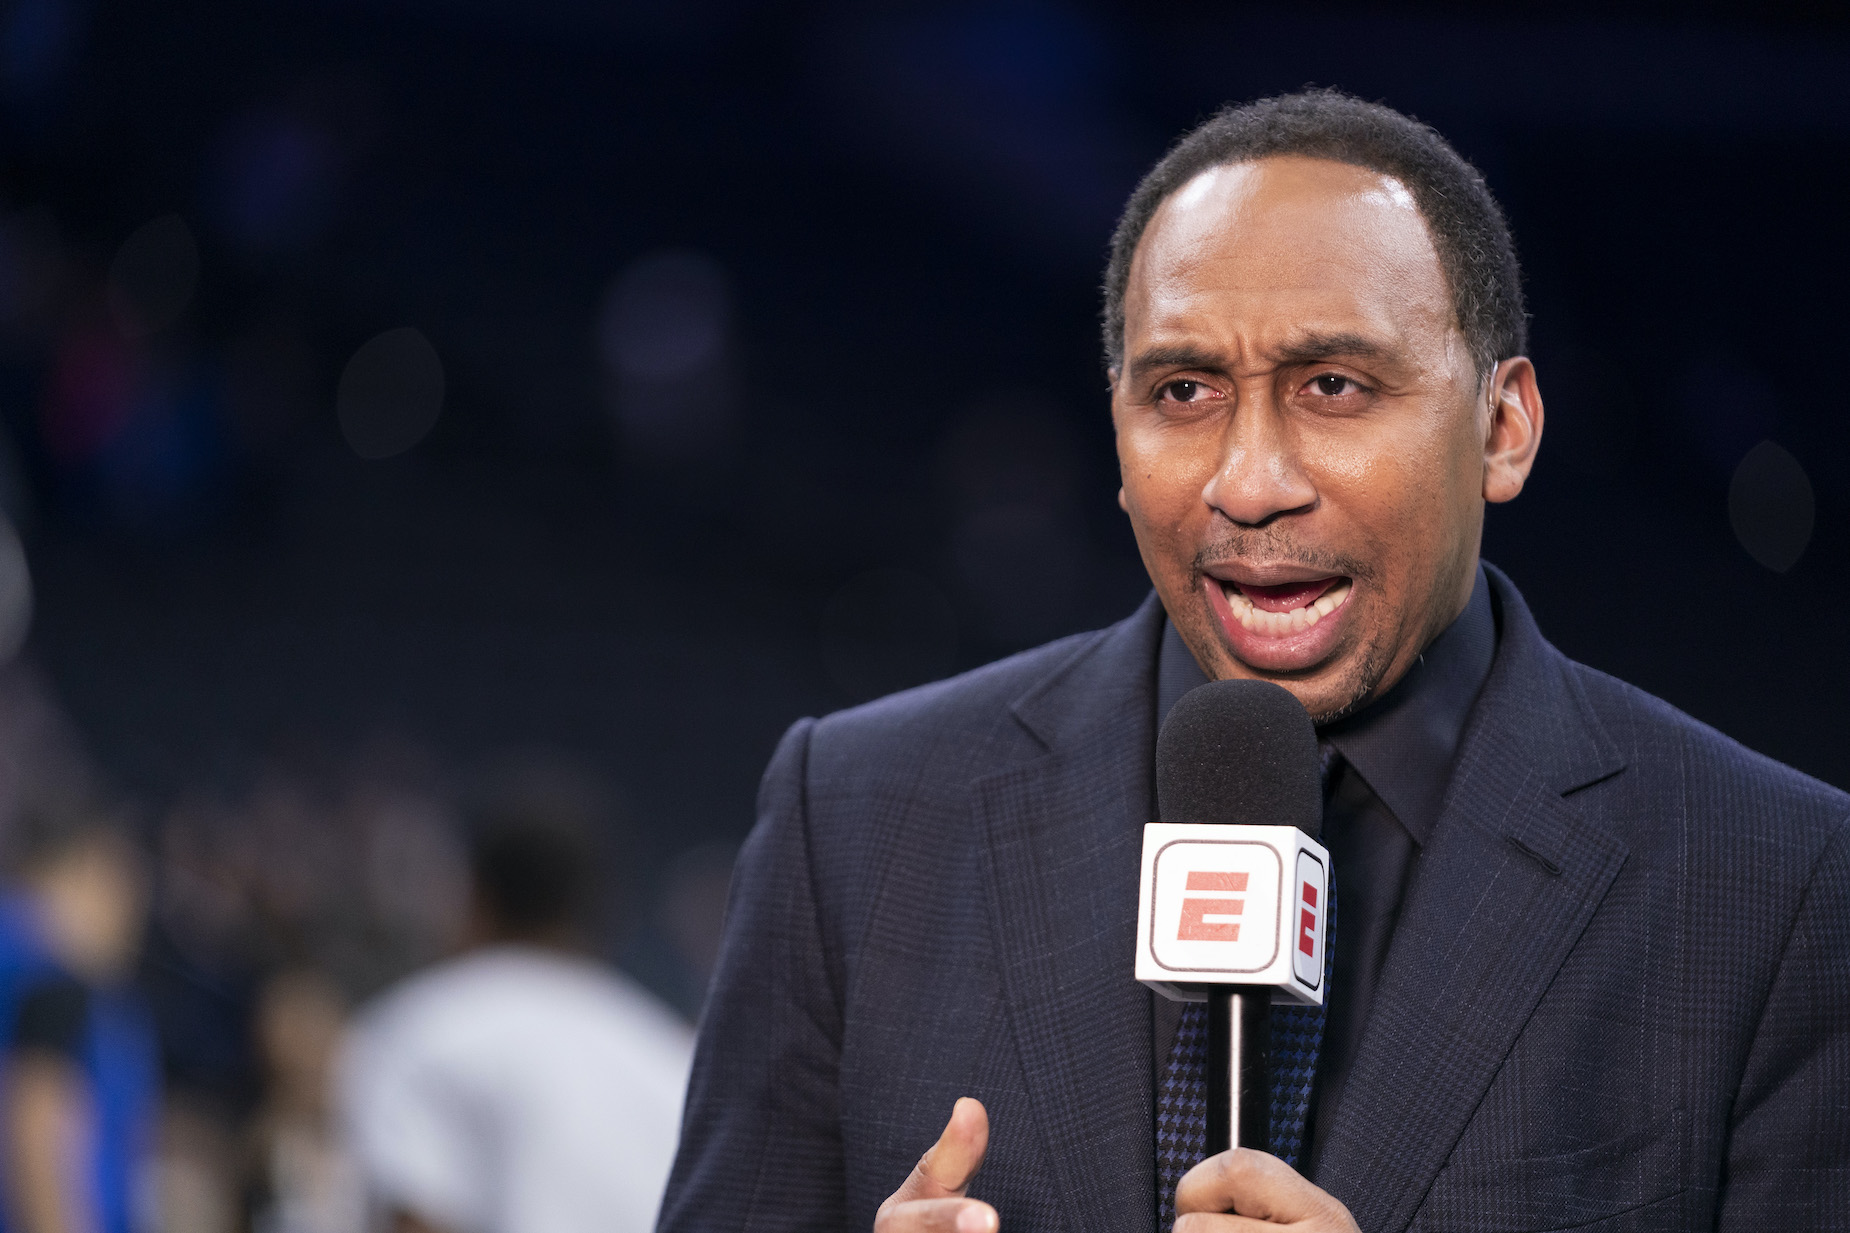 ESPN's Stephen A. Smith once appeared a major piece of career advice from the late Kobe Bryant.